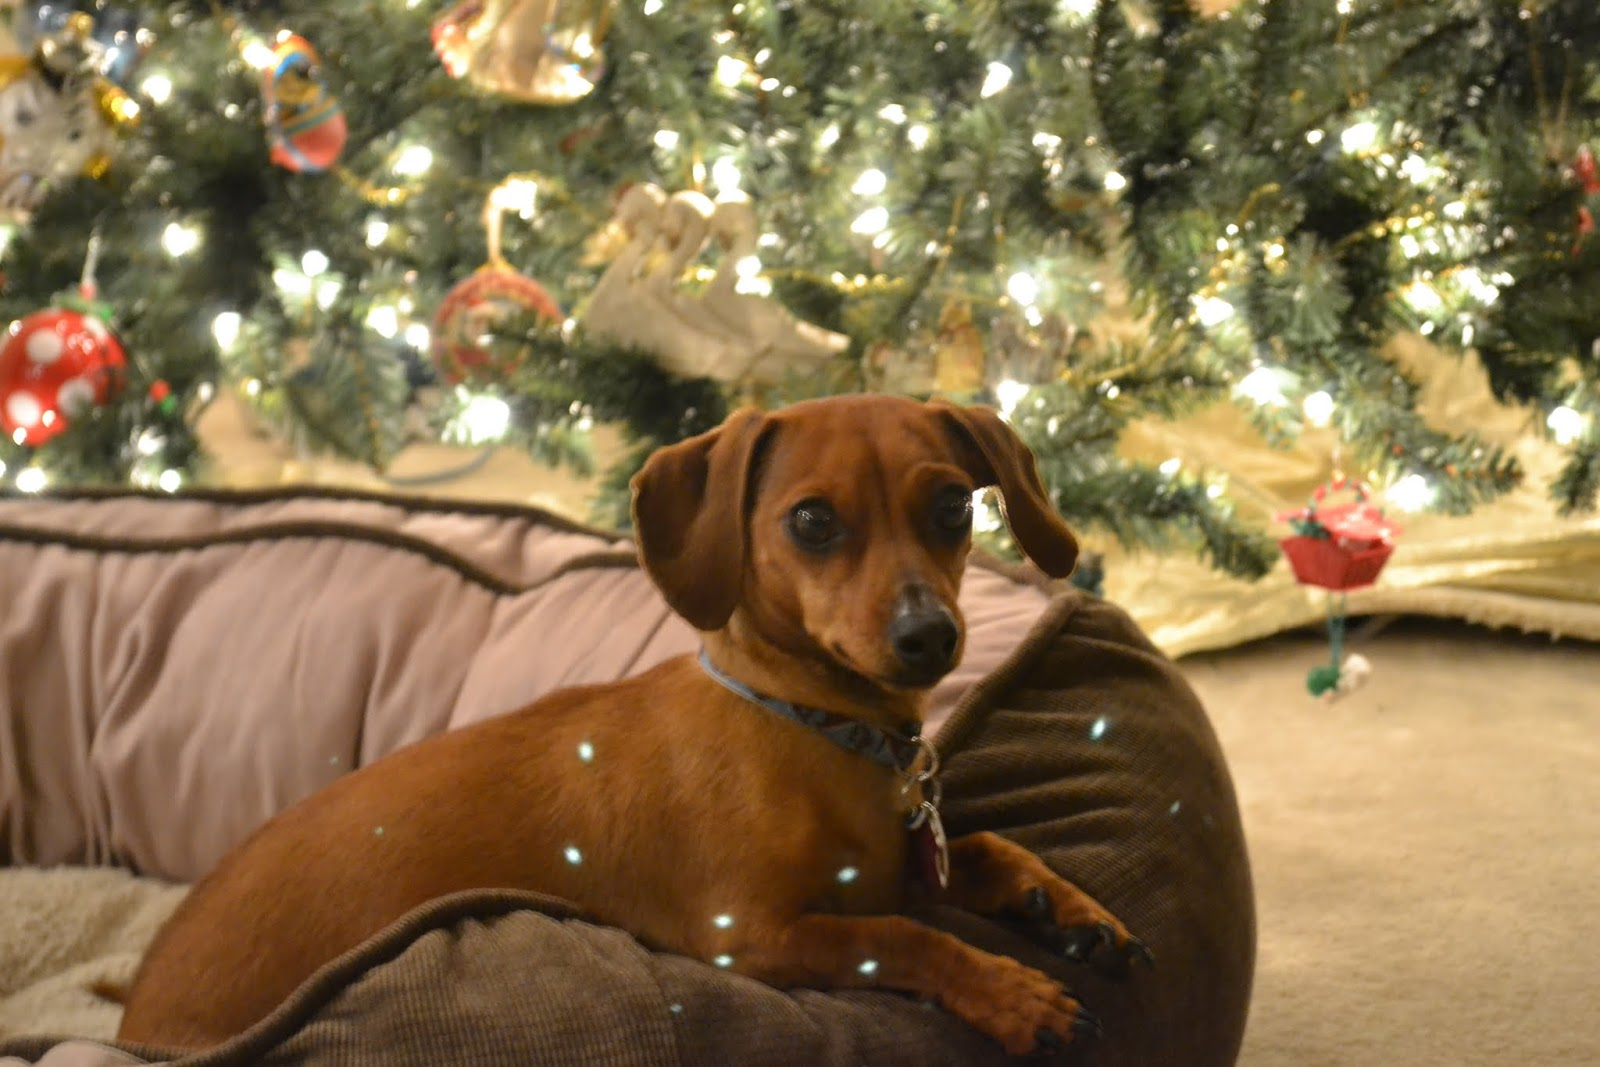 Dachshund at the Christmas tree wallpaper